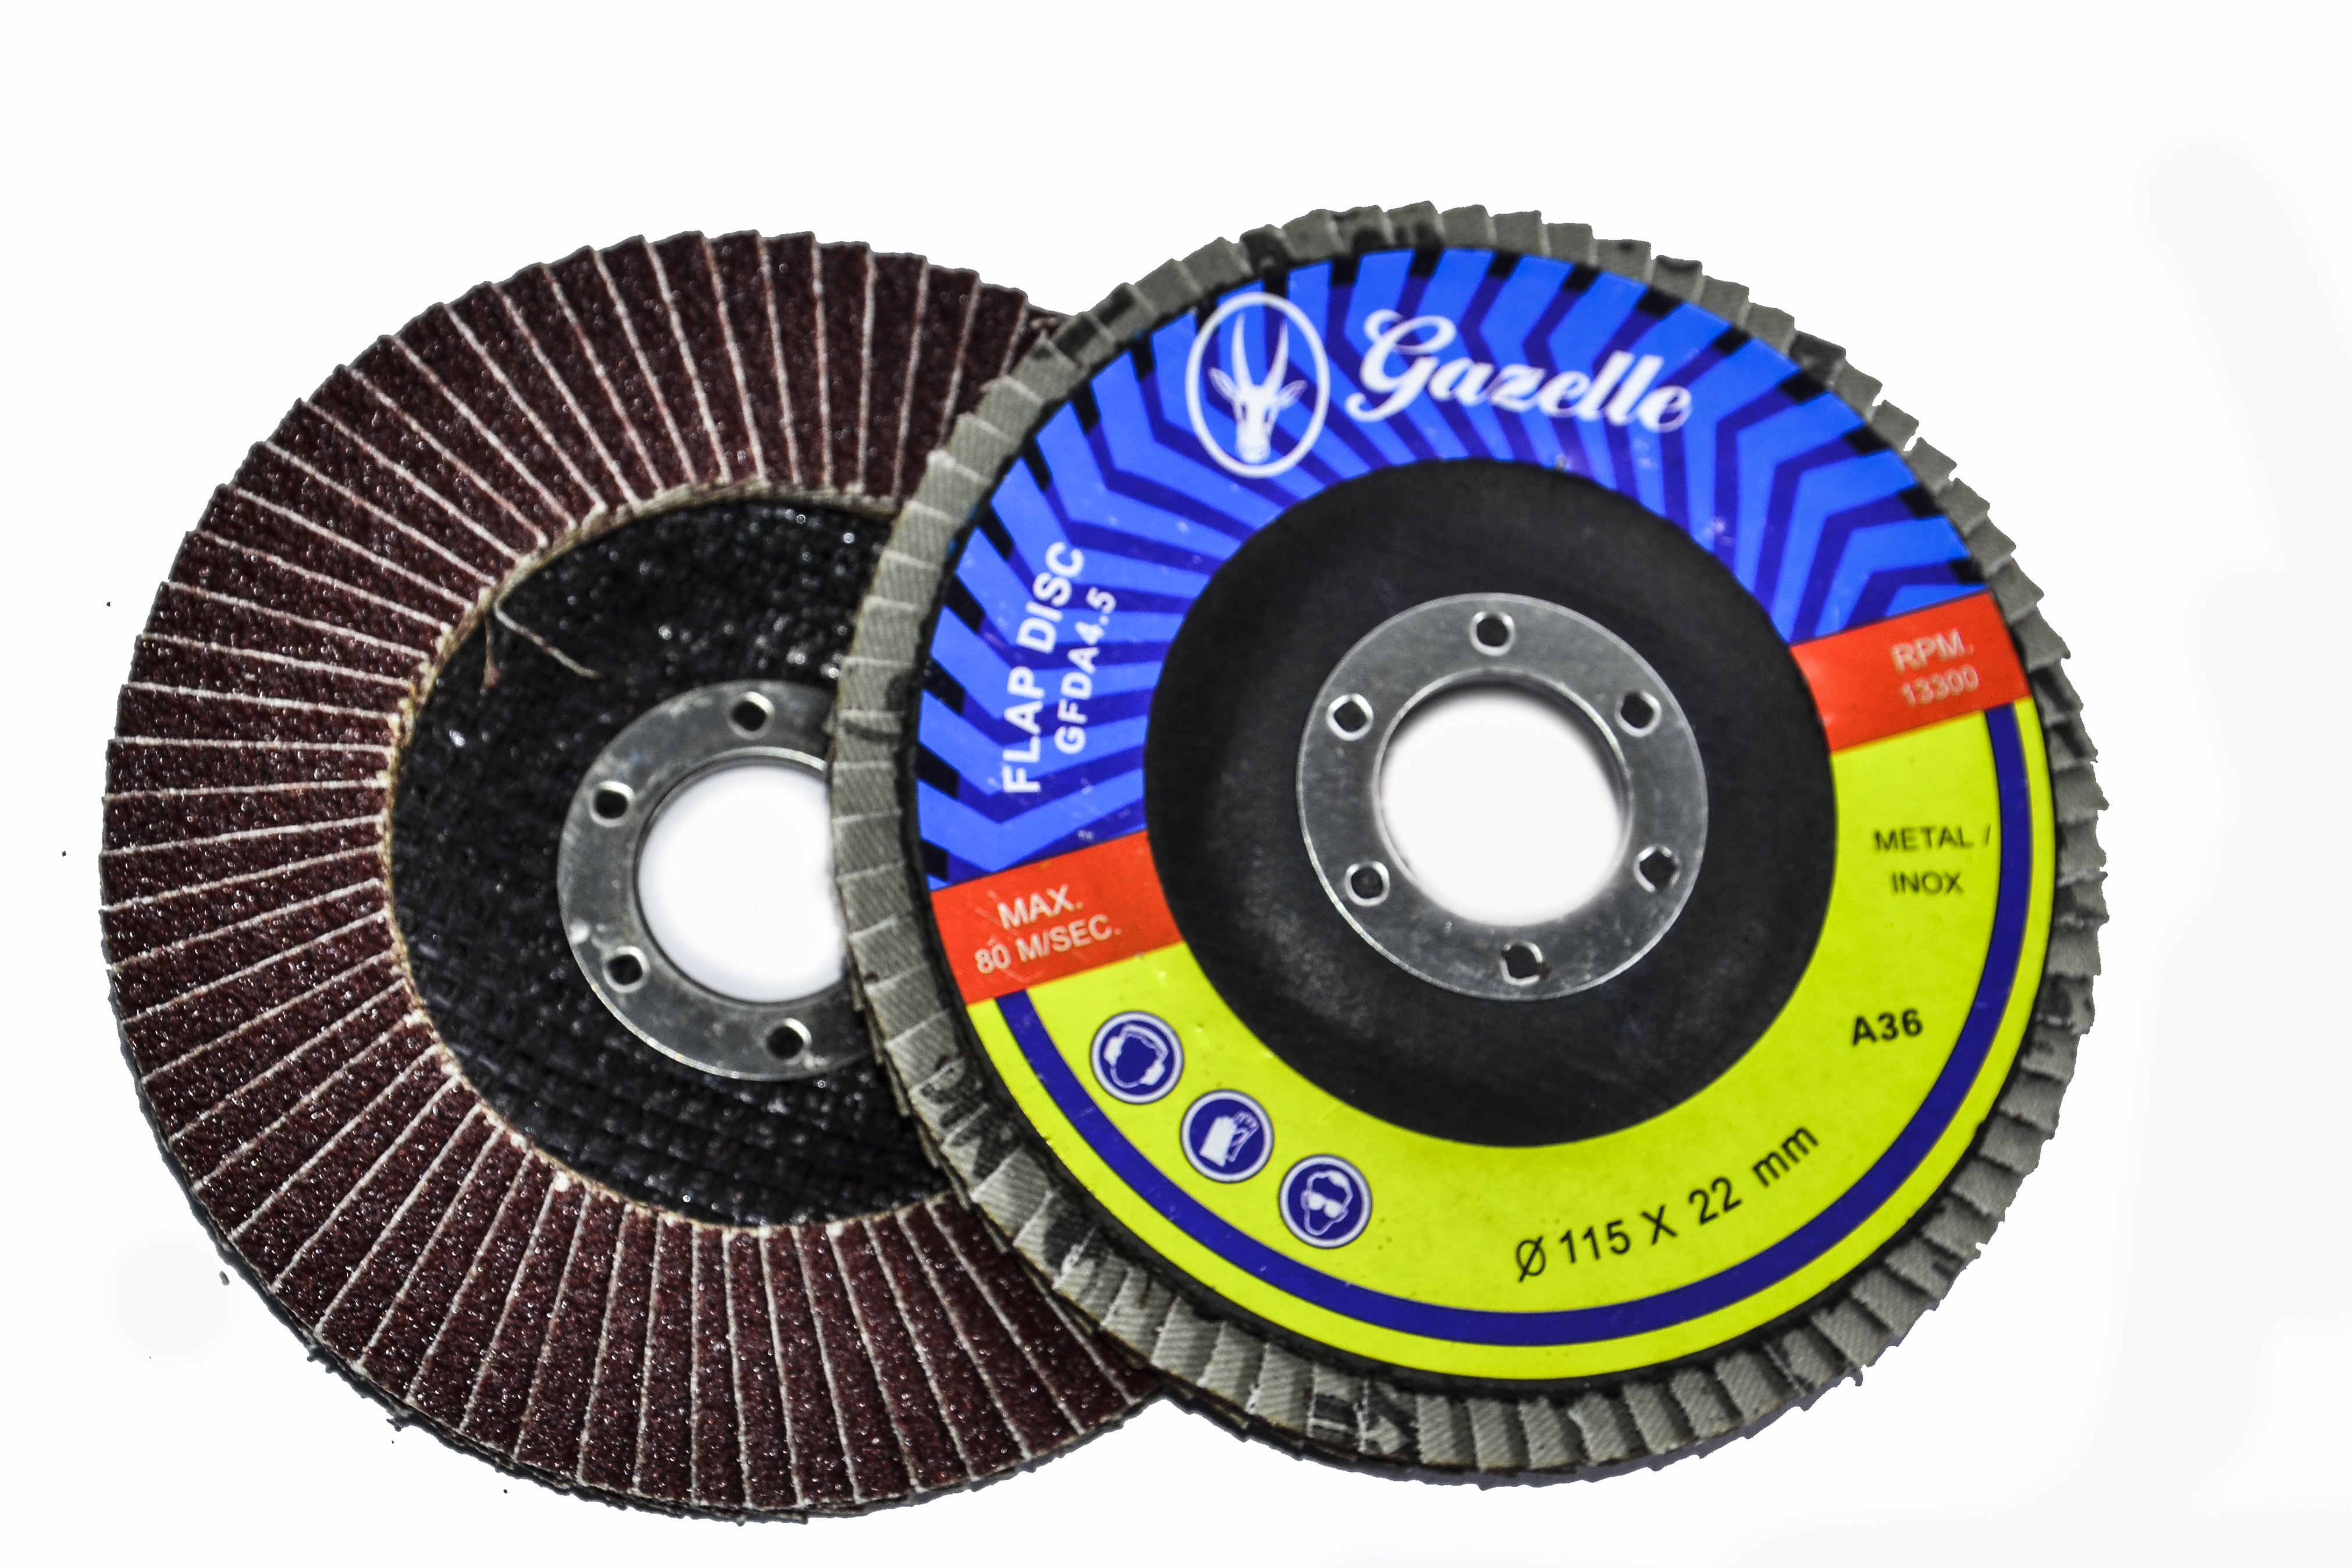 GAZELLE GFDA460G - Flap Disc 4in – 100mm x 60Grit Aluminium Oxide